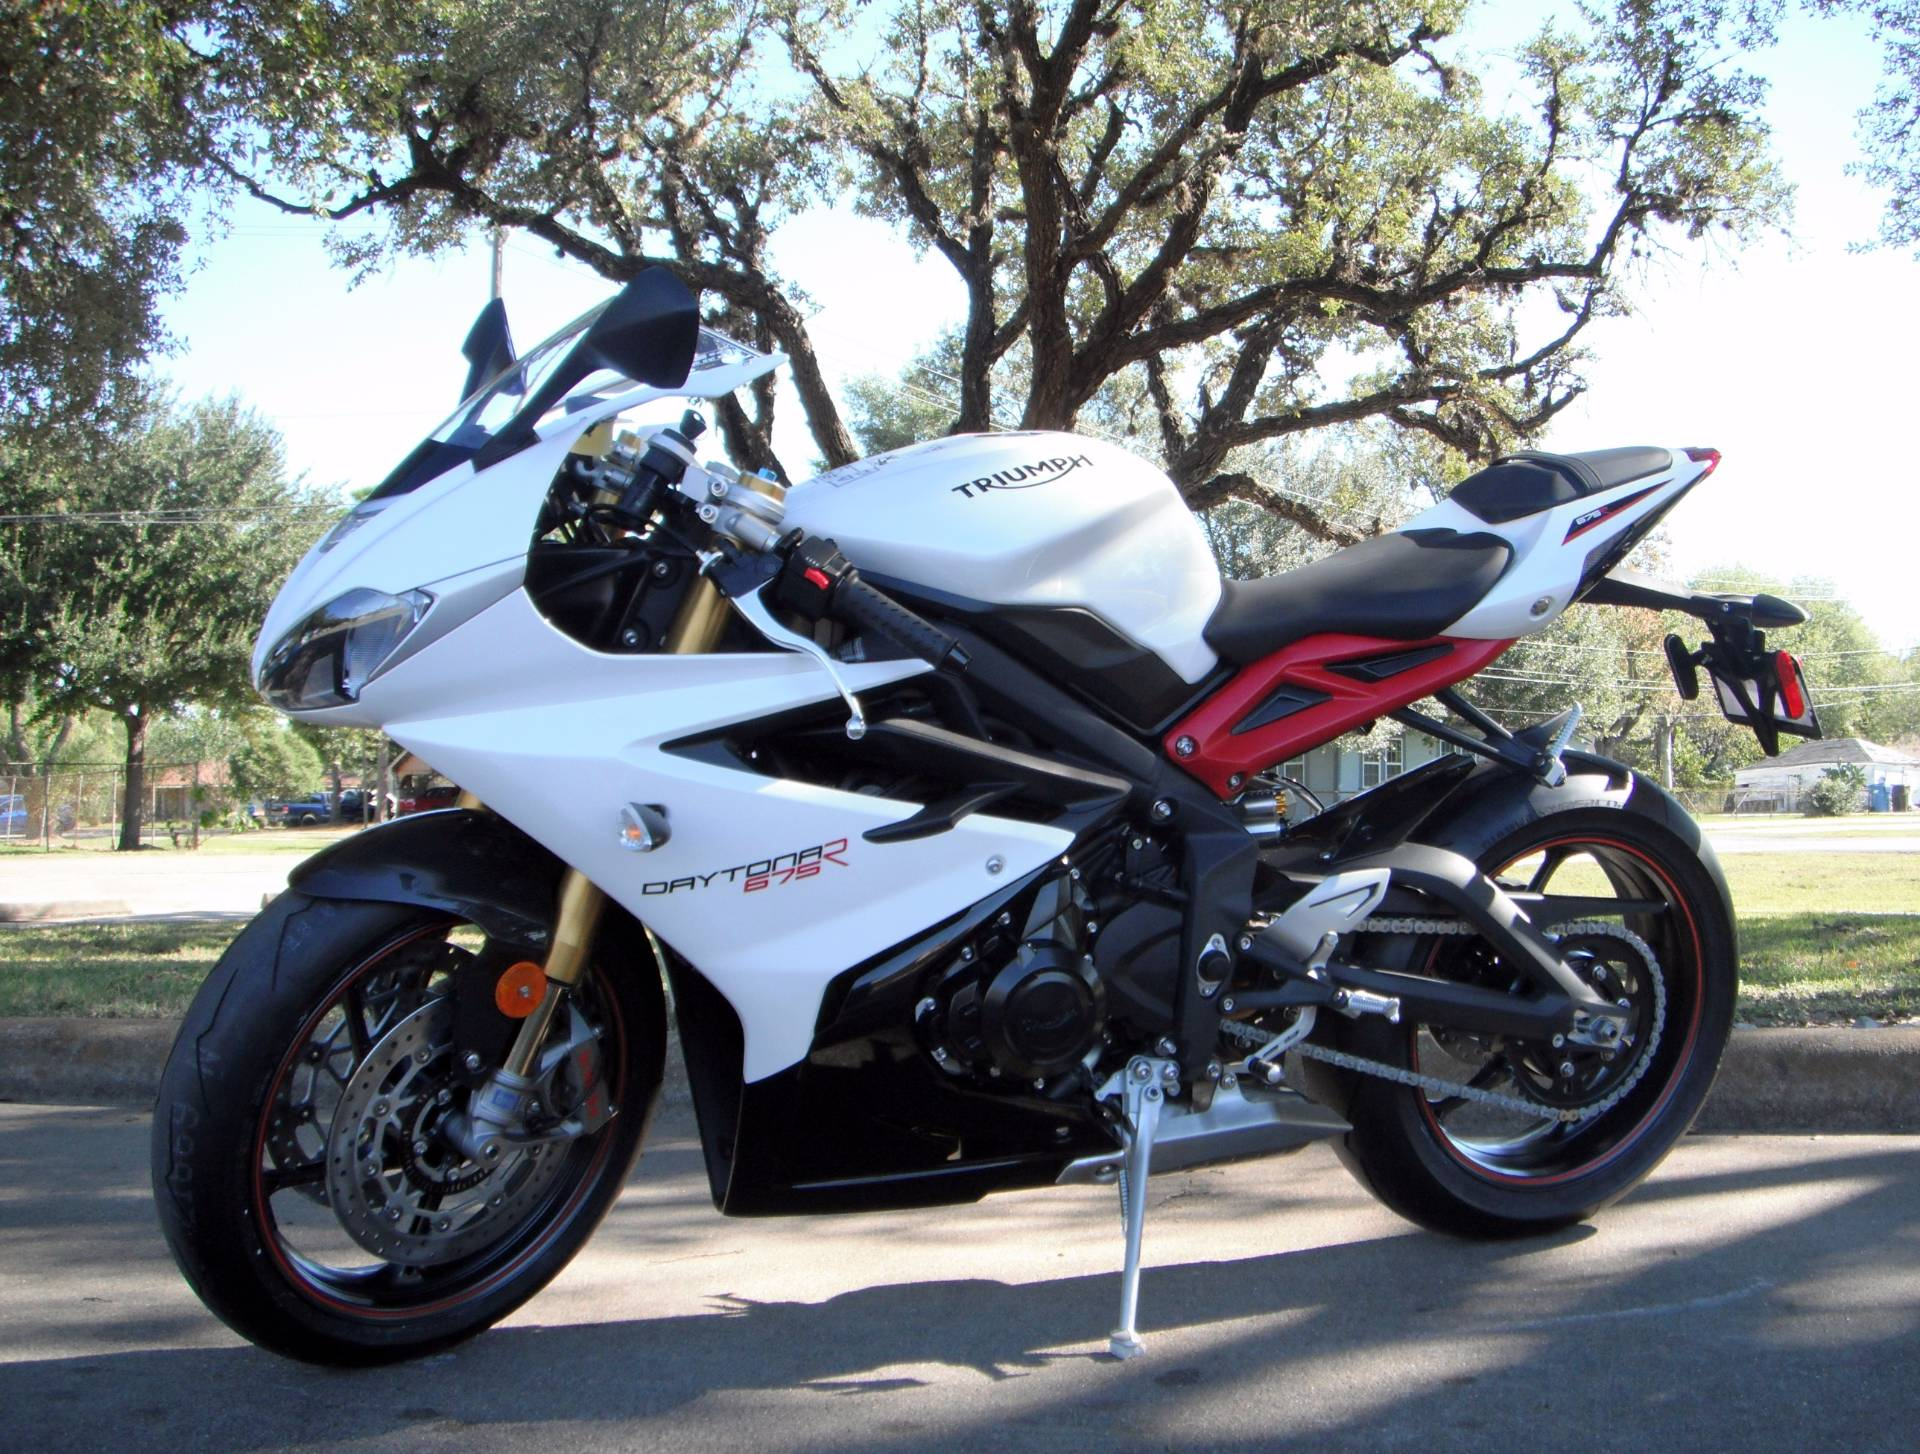 new 2017 triumph daytona 675 r motorcycles in south houston tx. Black Bedroom Furniture Sets. Home Design Ideas